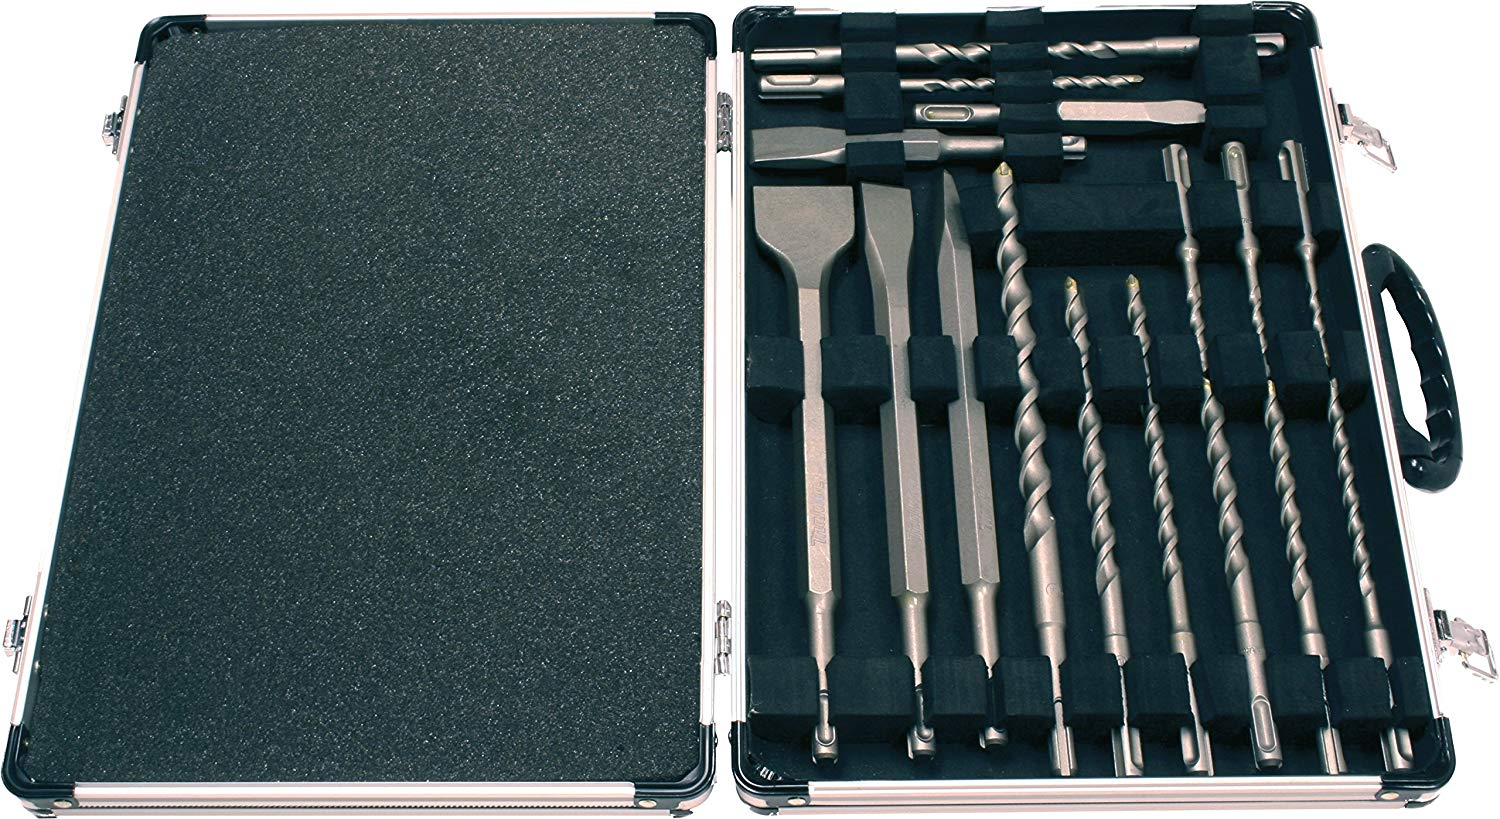 Makita SDS Plus Drill and Chisel Set, 17 pc for £18 On Amazon